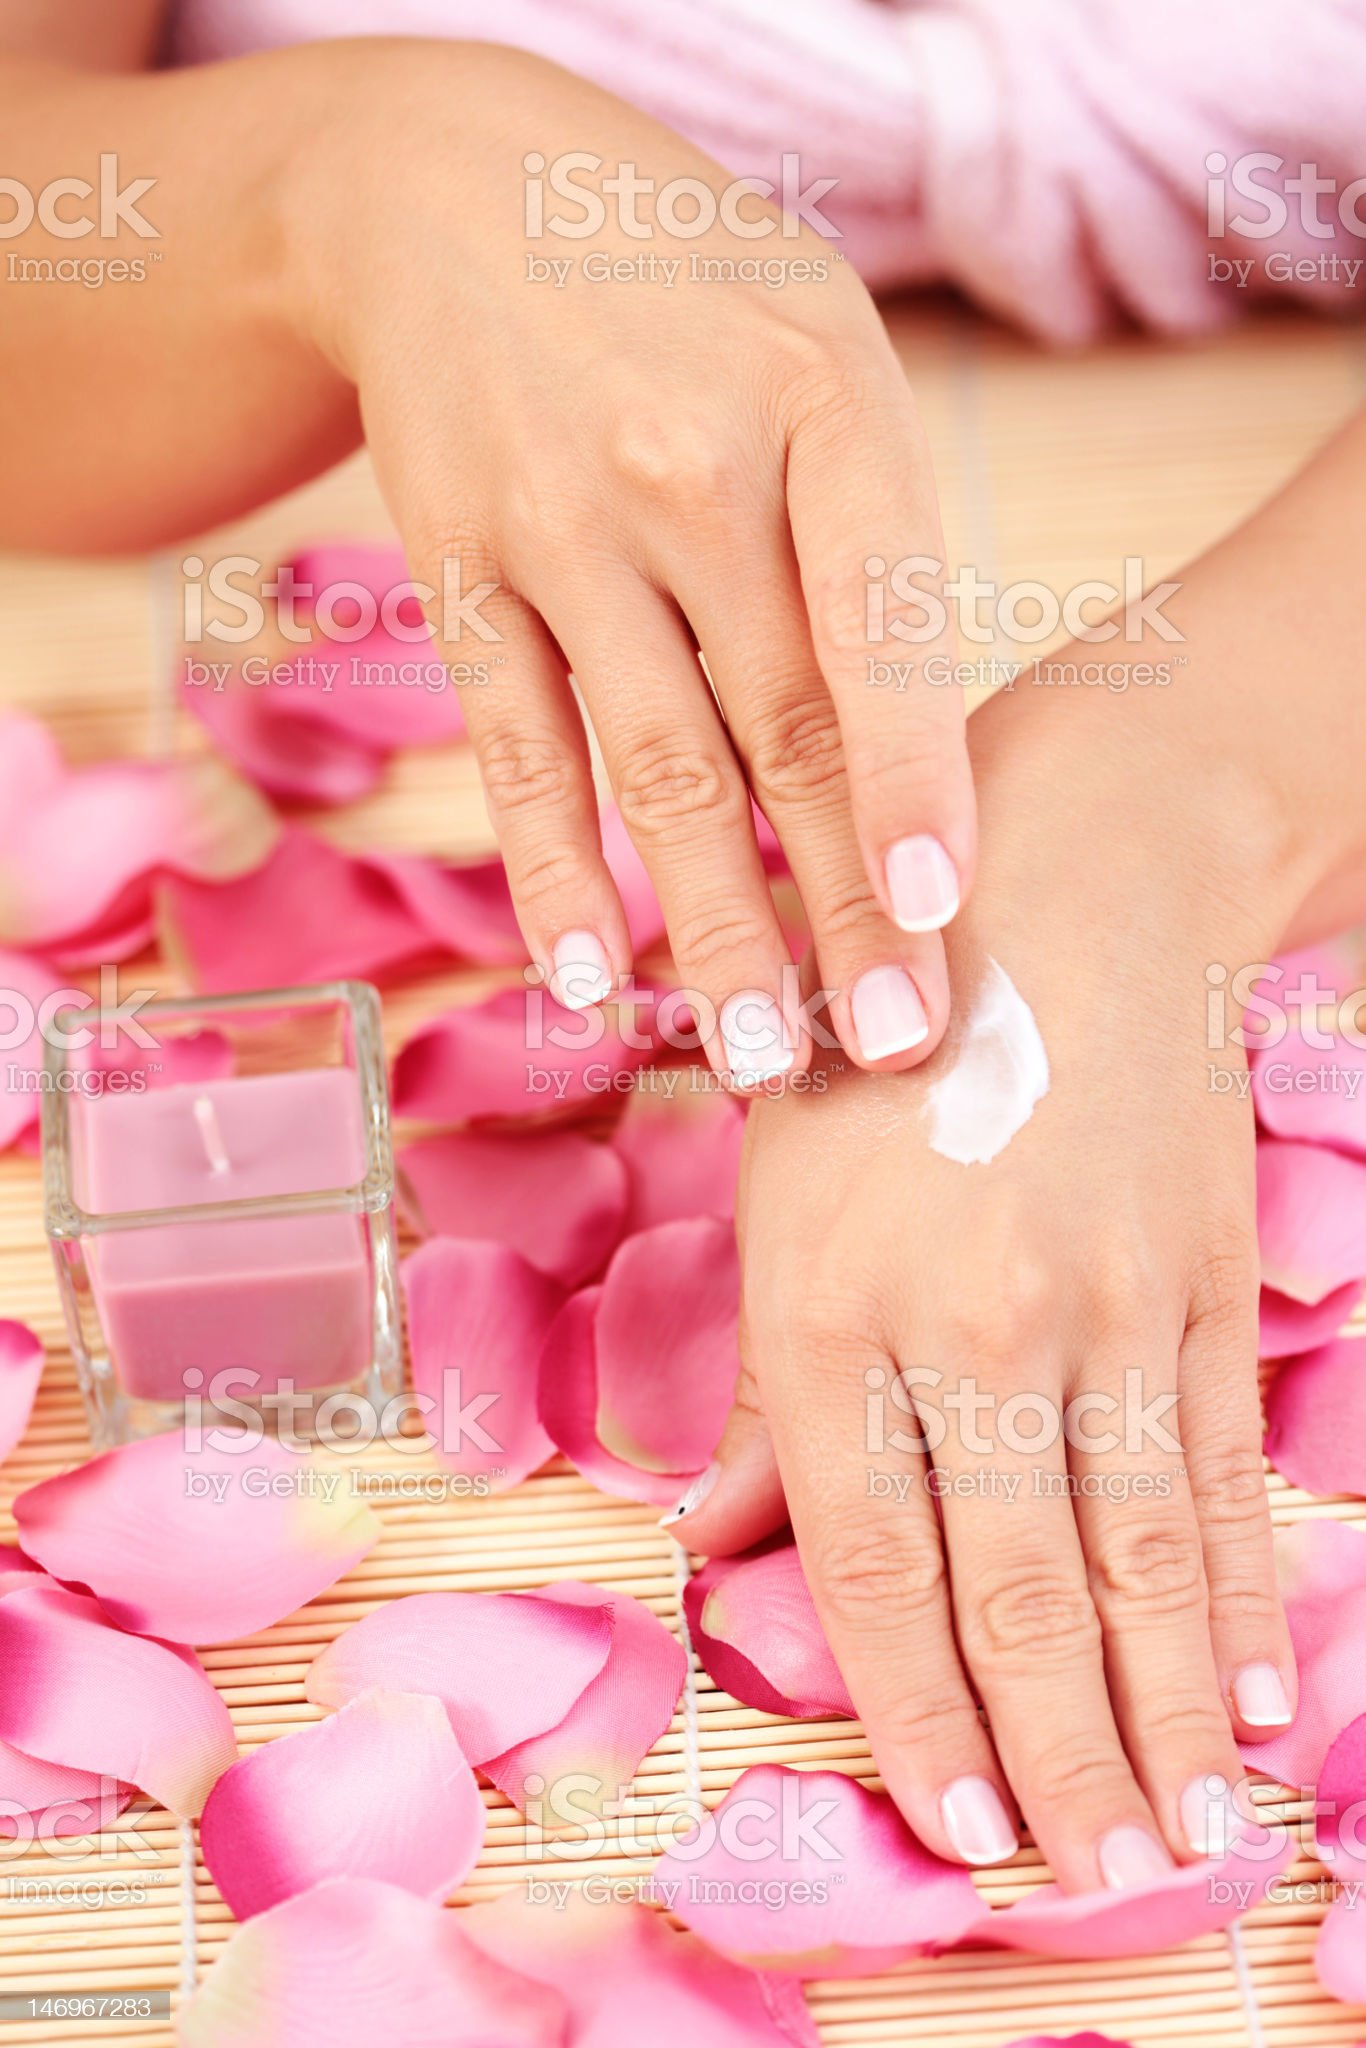 hand care royalty-free stock photo